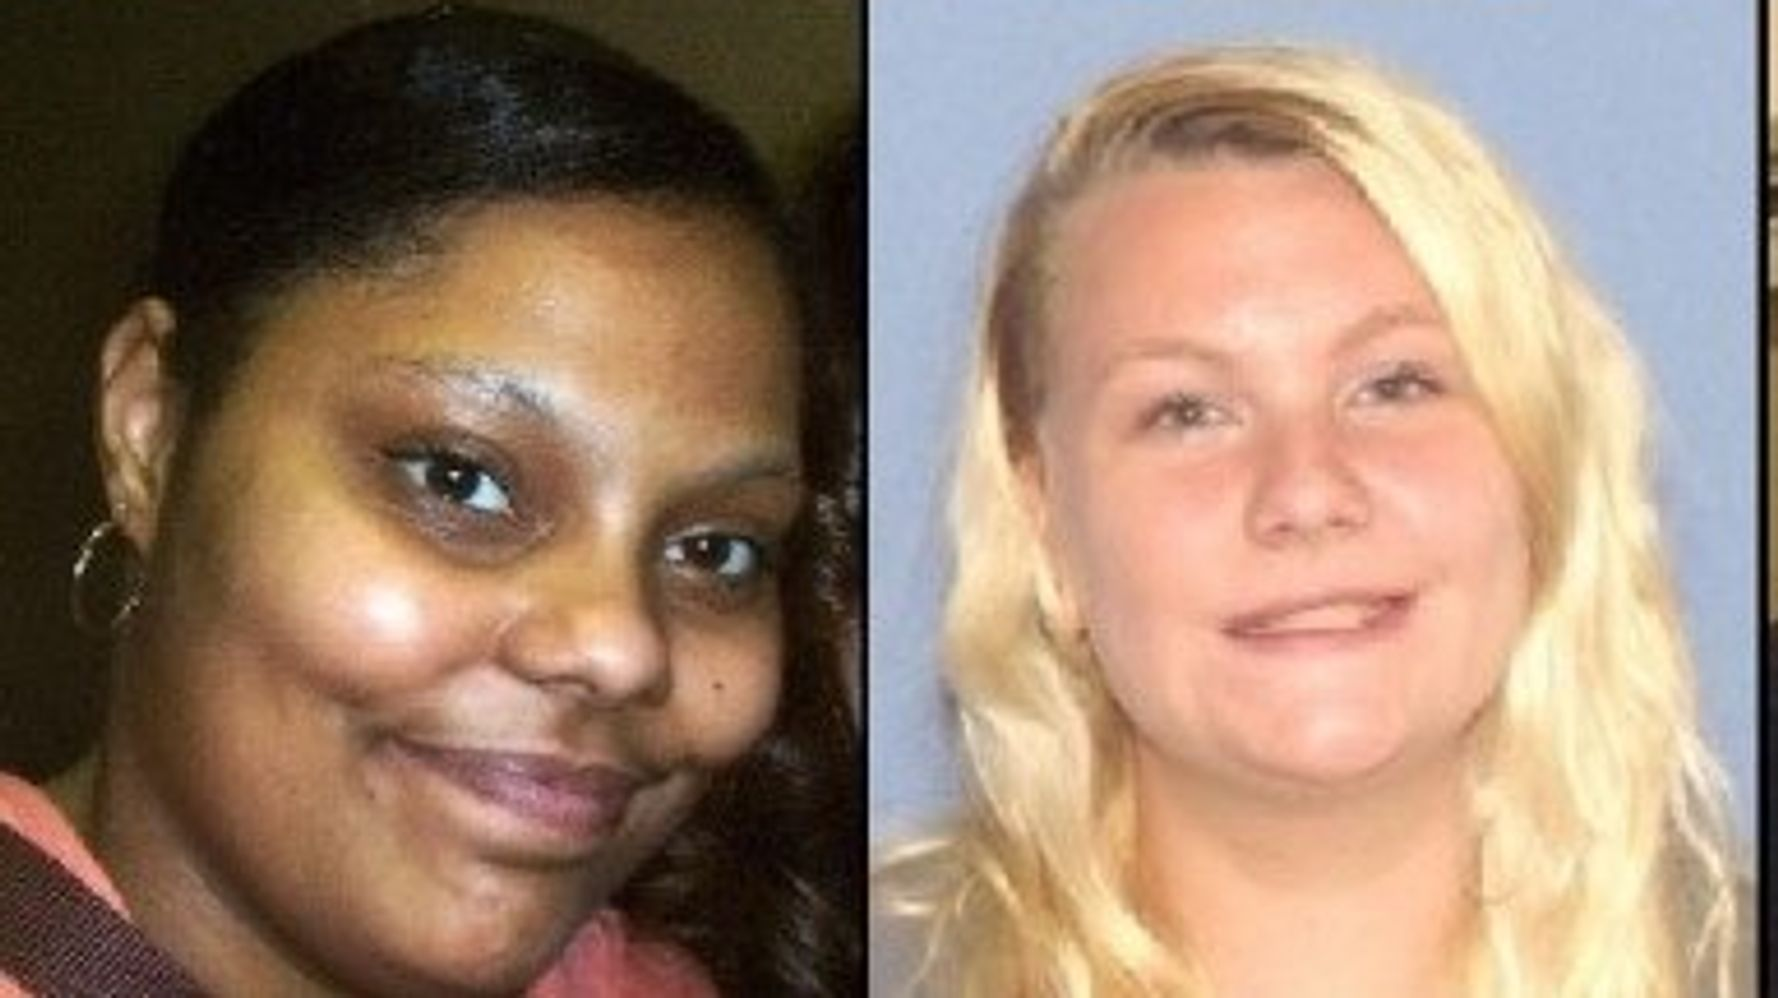 6 Women Disappeared In A Small Town, And After 2 Years The